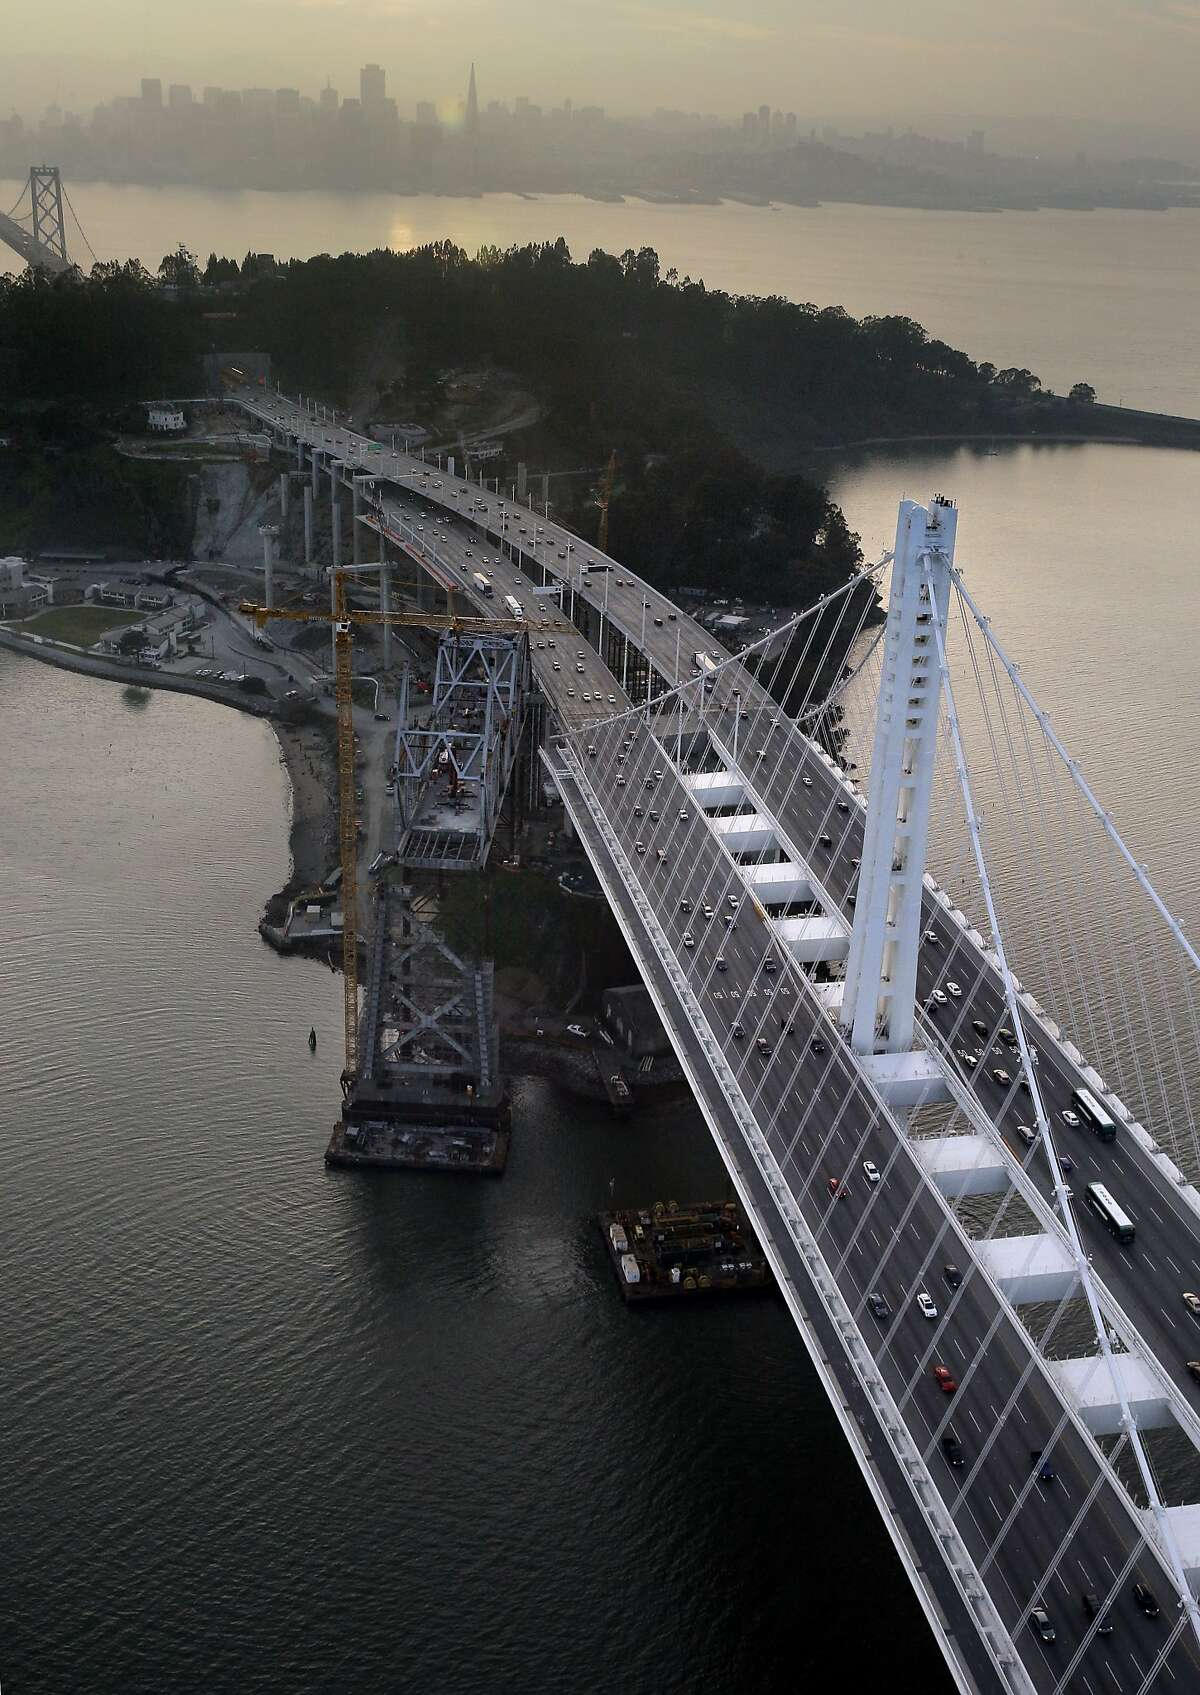 The Bay Bridge's novel, self-anchored suspension design is striking, but it came at a huge cost. Bridge experts were outvoted in picking the design by panel members with no bridge knowledge or experience.